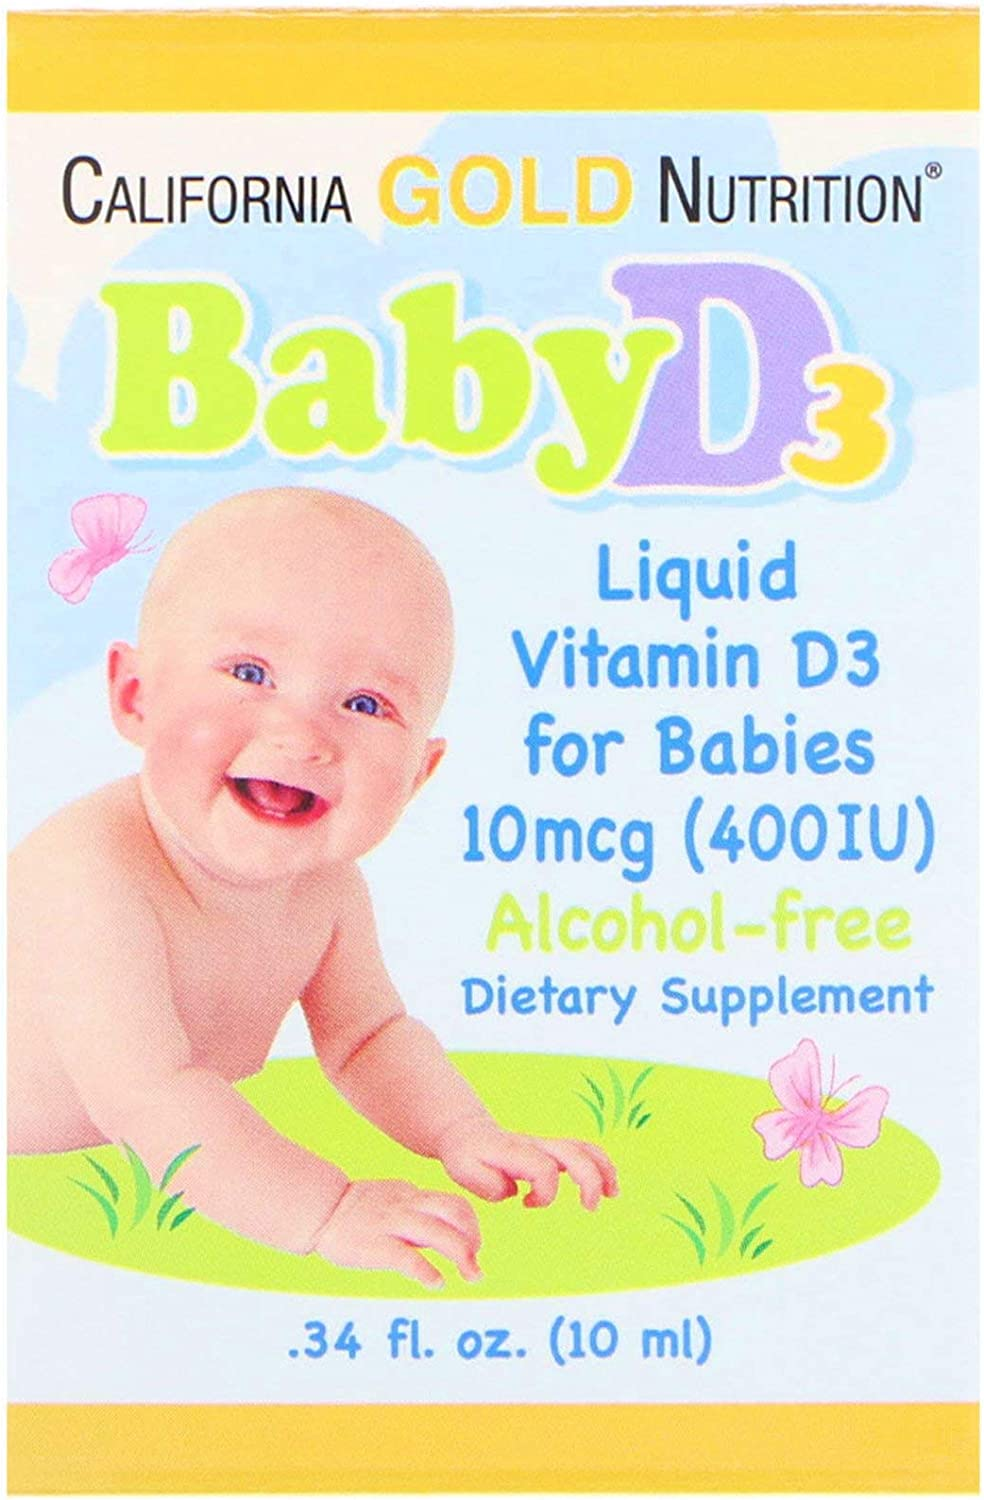 California Gold Nutrition, (2 Pack) Baby Vitamin D3 Drops, 400 IU. 34 fl oz (10 ml), Alcohol-Free, Gluten-Free, Soy-Free, No GMOs, CGN